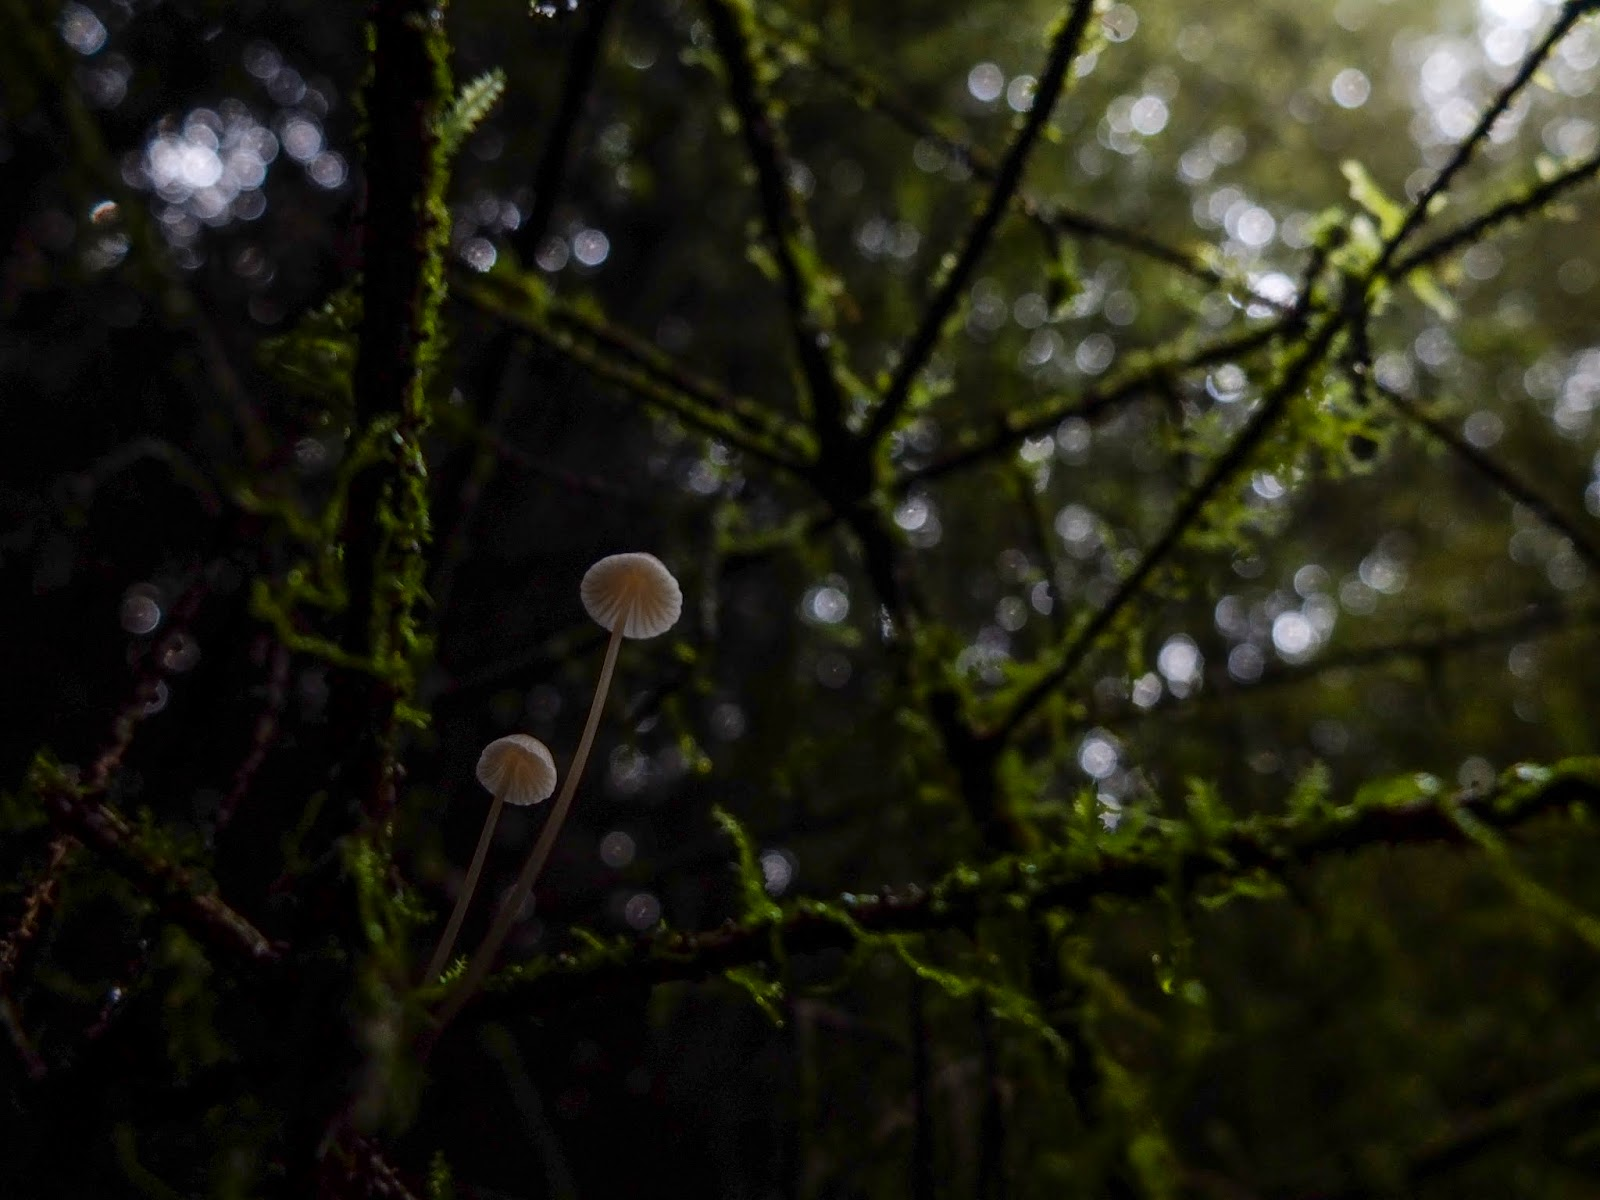 Tiny white mushrooms growing on mossy tree branches inside a forest and towards the light.